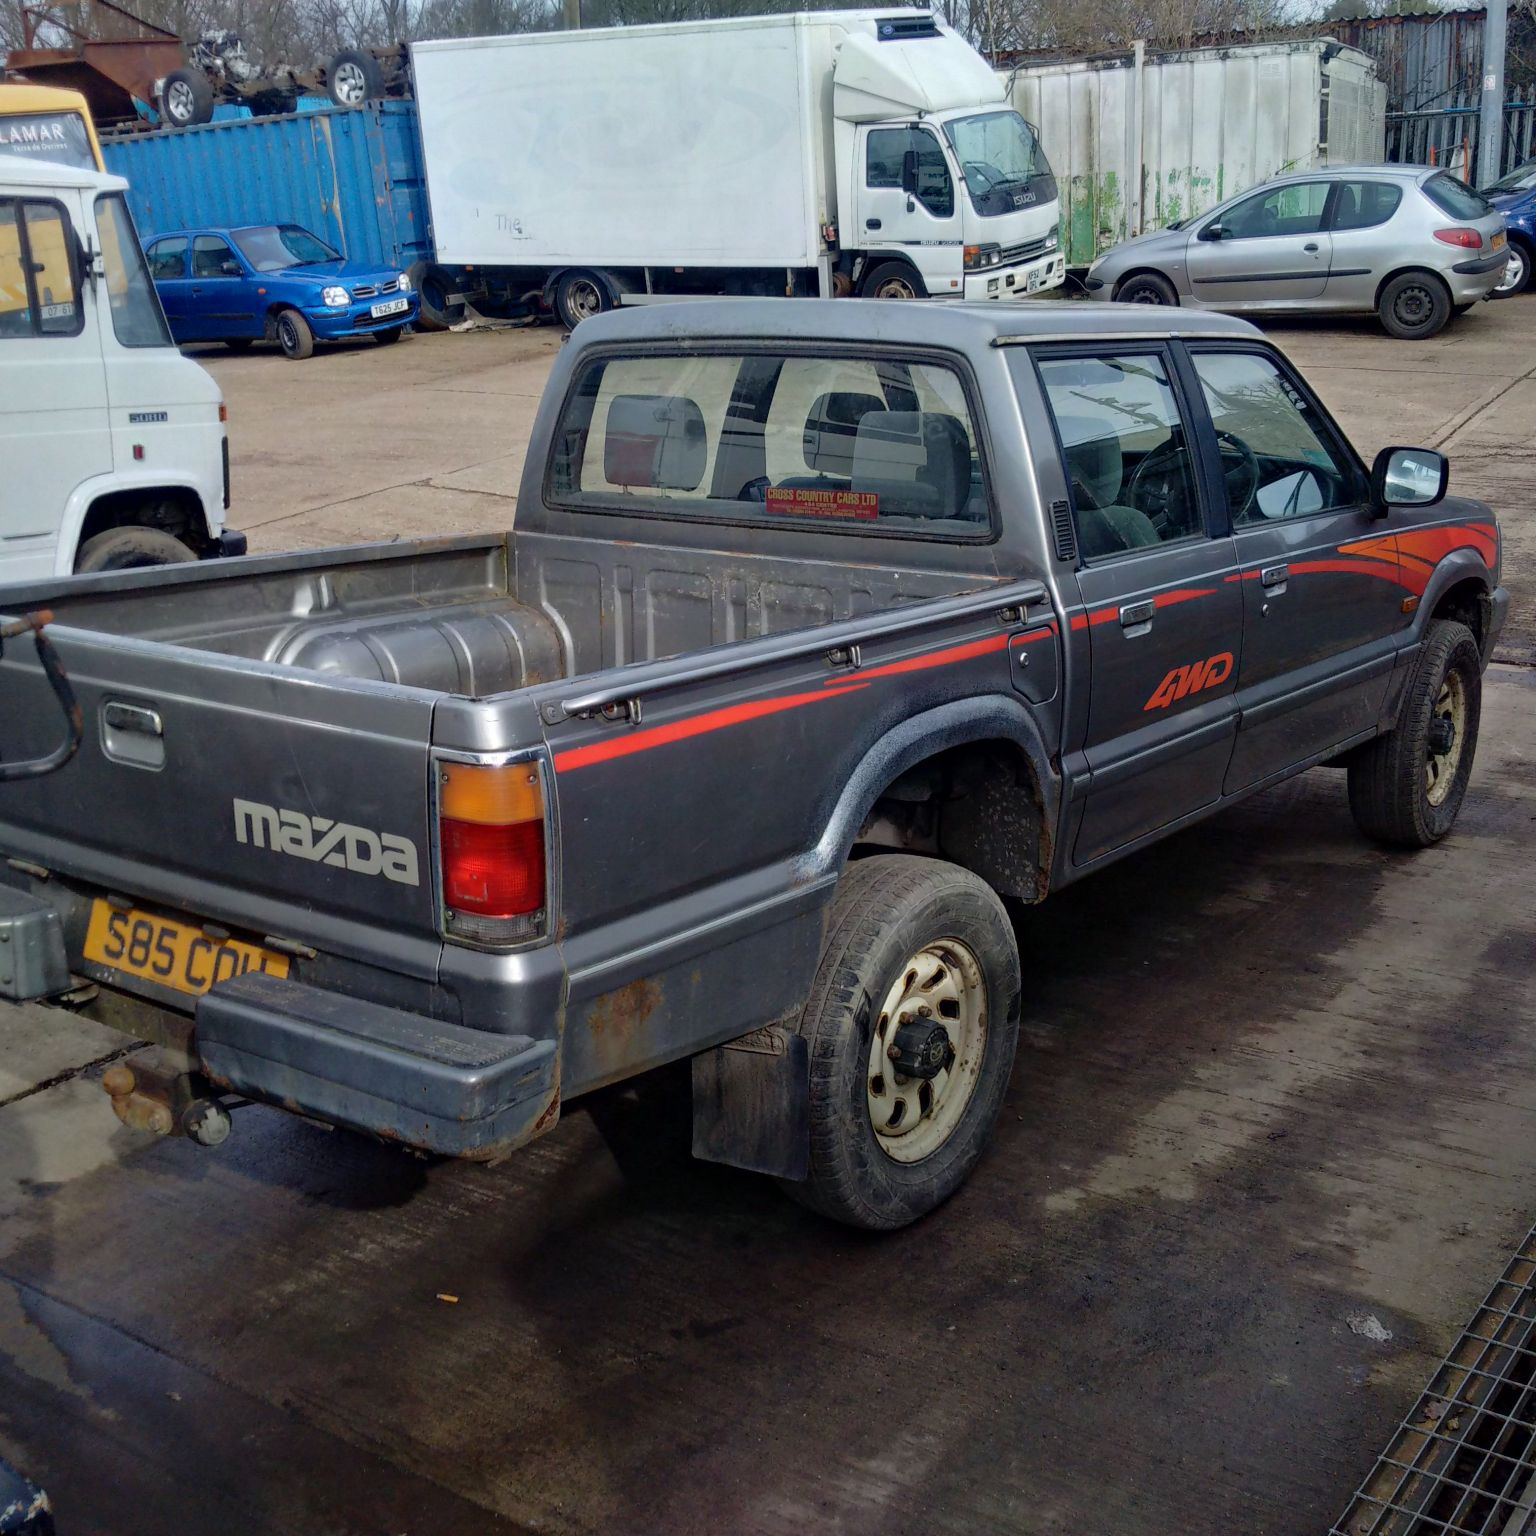 1998 Mazda B2500 4x4 Pick Up Simply Exports Engine Img 20170304 133820 Hdr 133831 133844 133855 133919